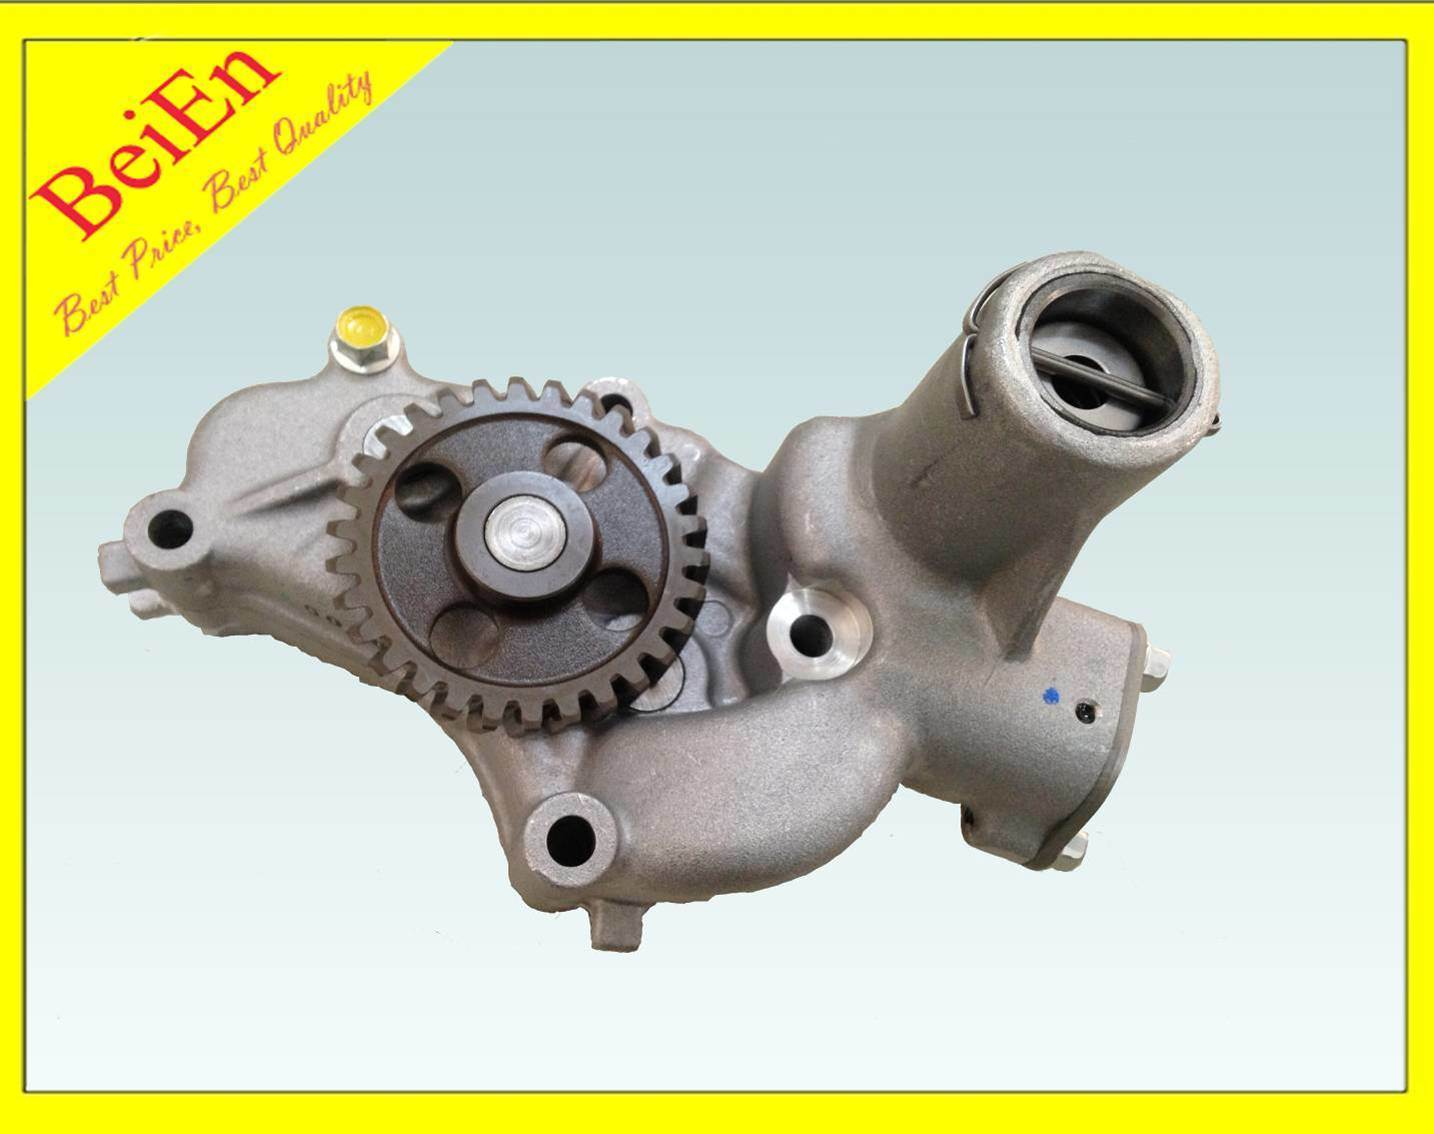 Genuine Oil Pump Assy for Excavator Engine Spre Parts (Part number: 1131003121)